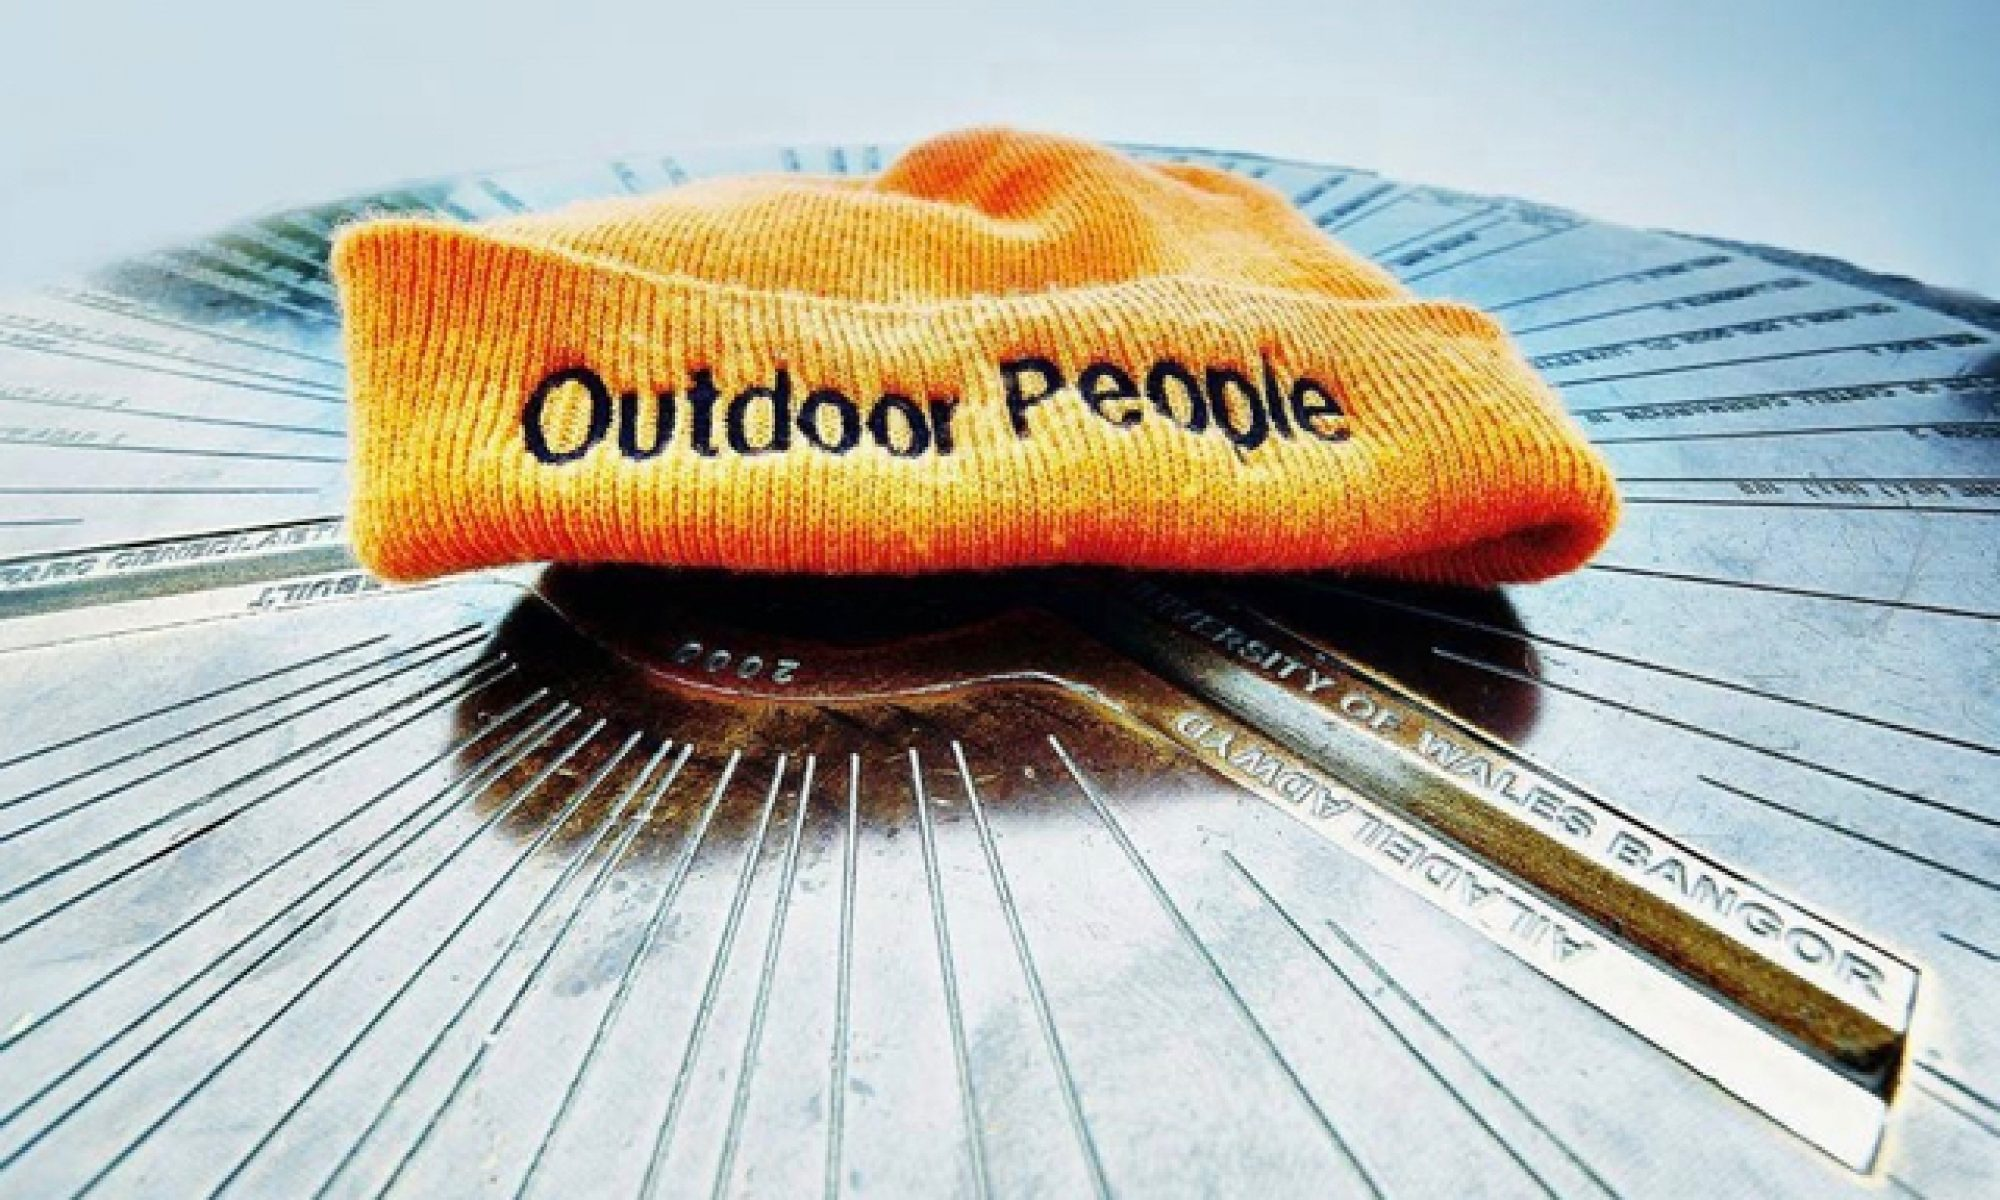 Outdoor People Journal